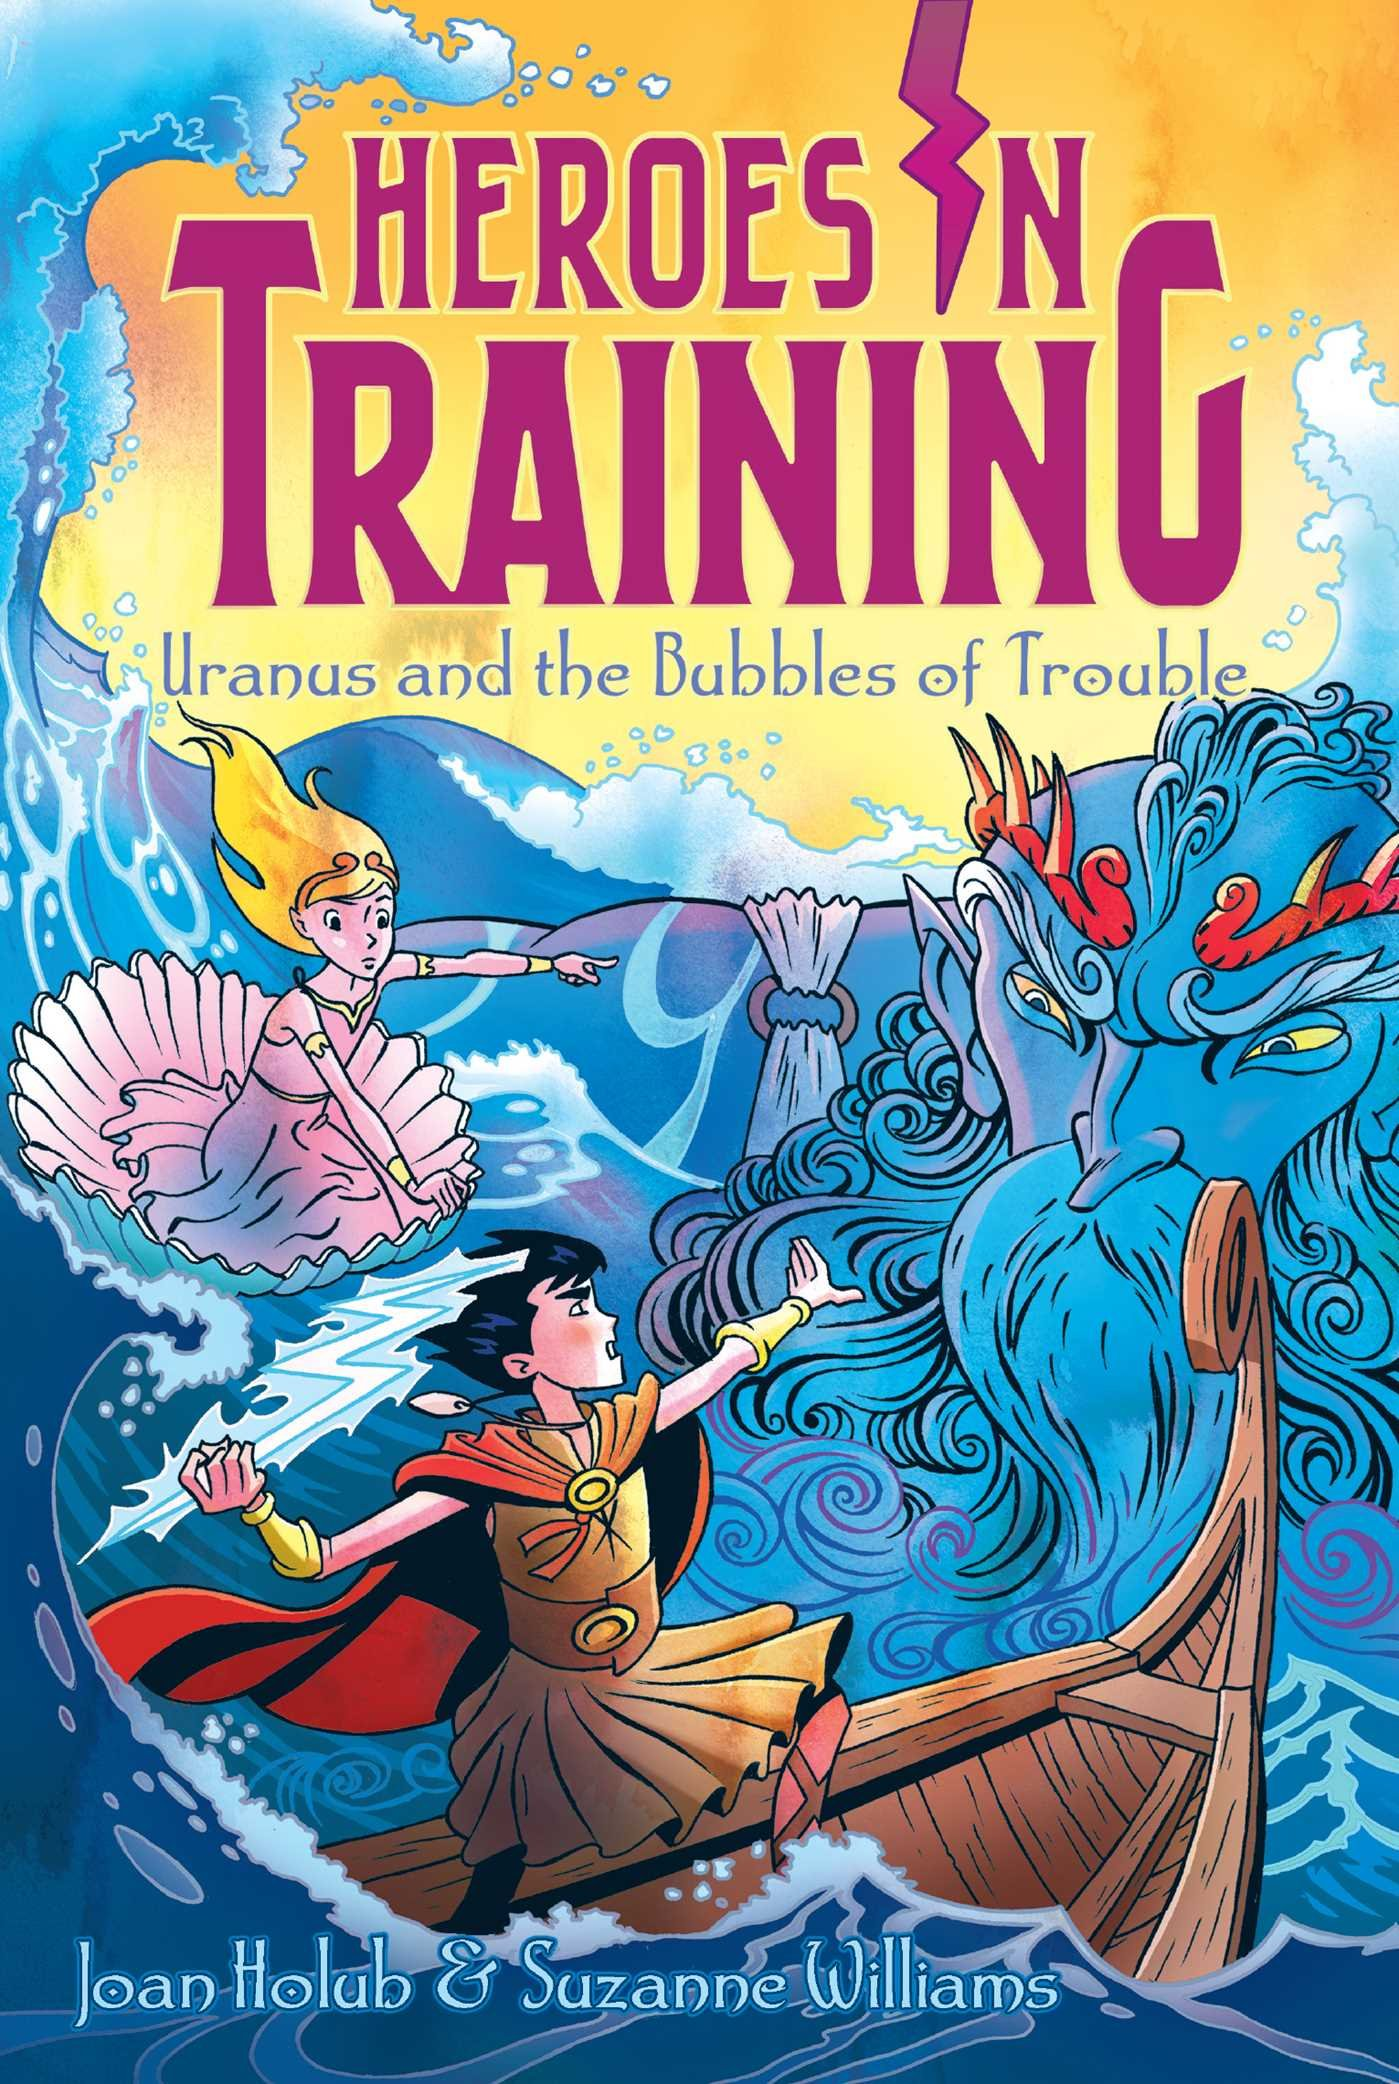 Uranus and the Bubbles of Trouble (Heroes in Training) ePub fb2 ebook